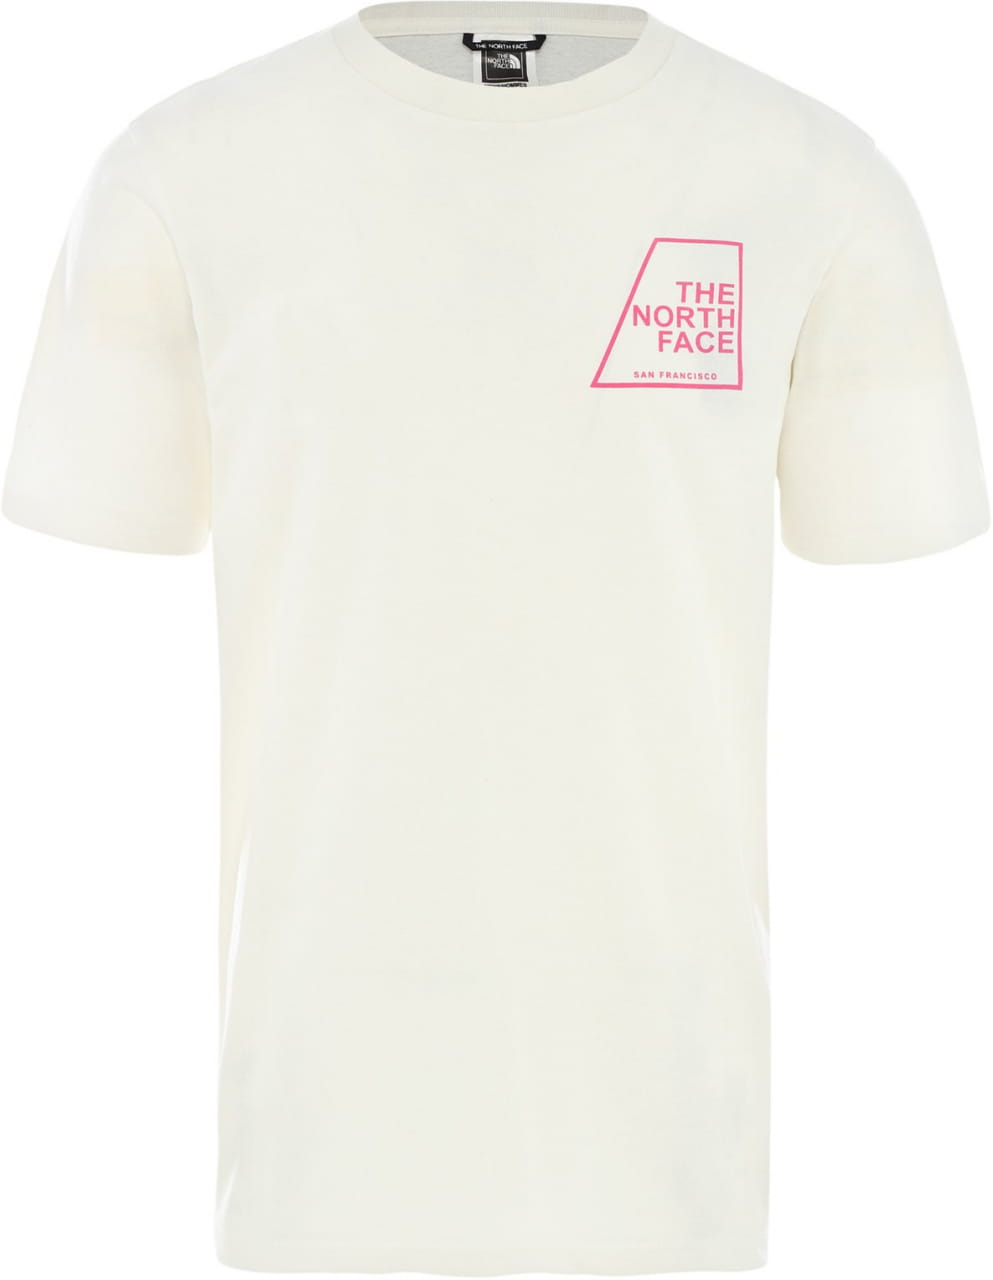 T-Shirts The North Face Men's Recover Short-Sleeve T-Shirt